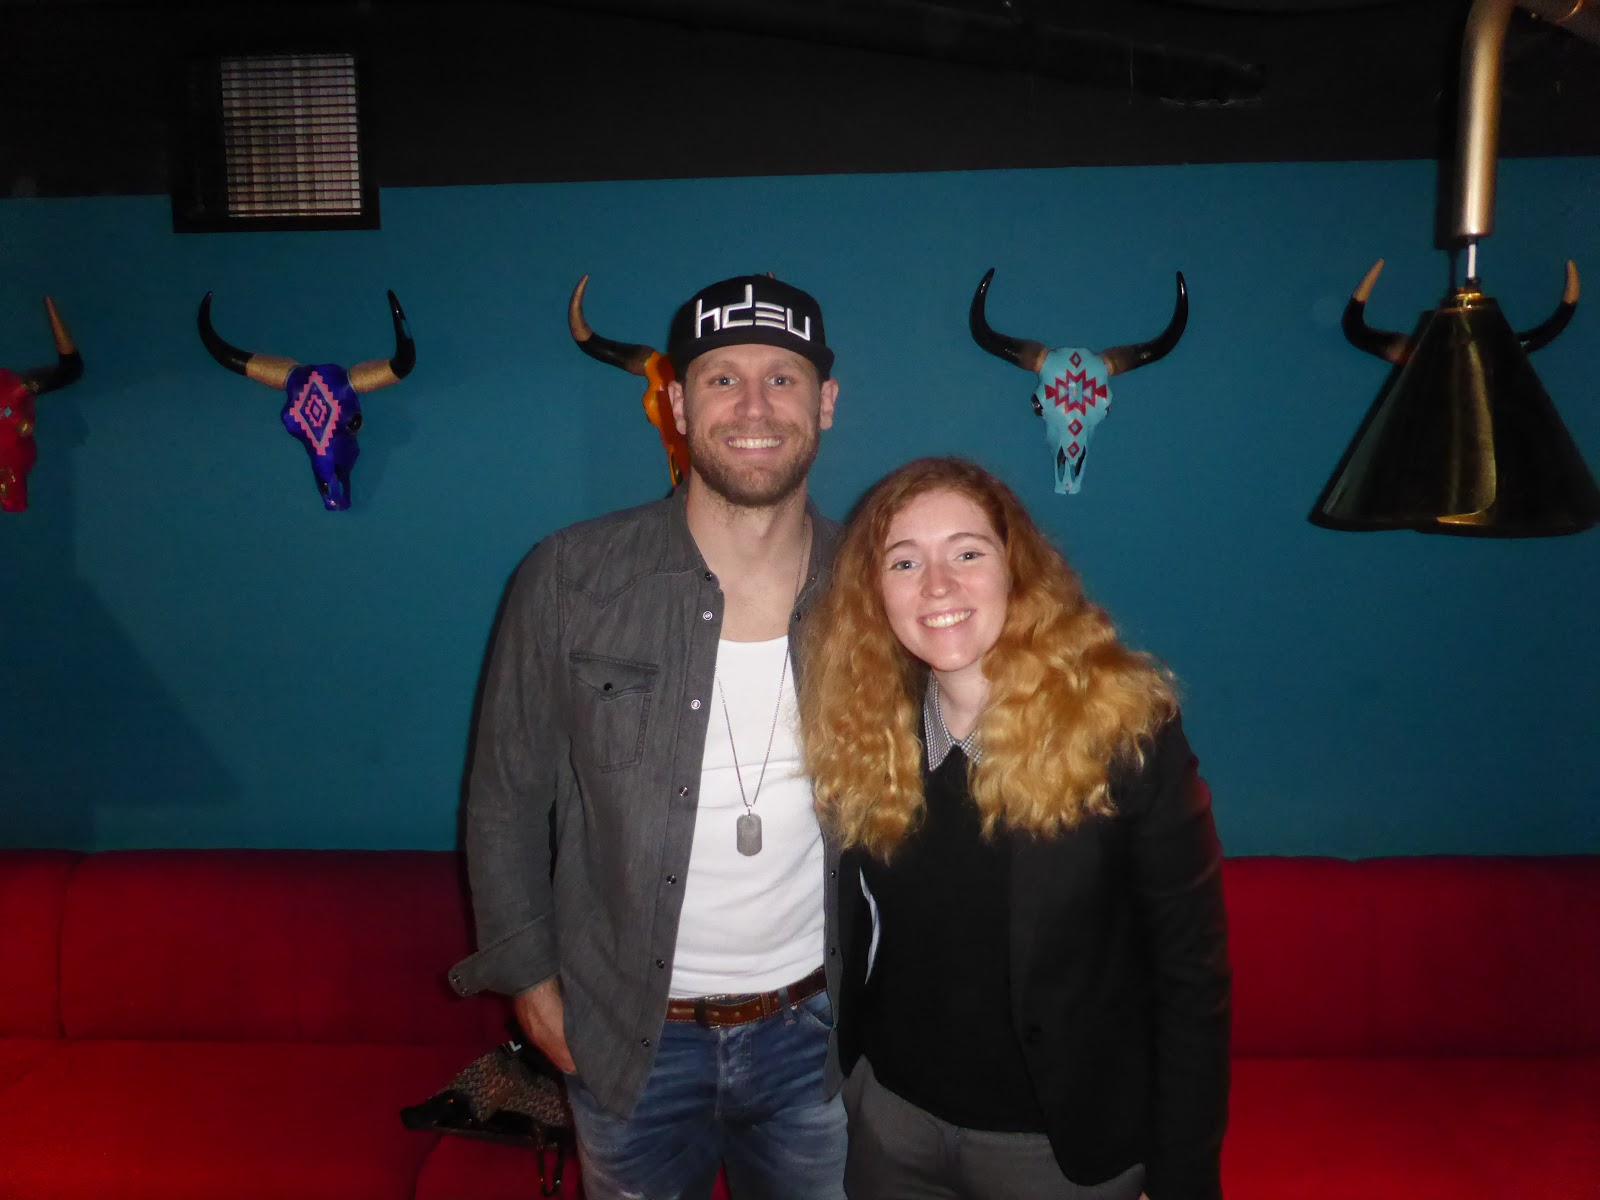 Ciara S Country Concert Review Chase Rice The Borderline